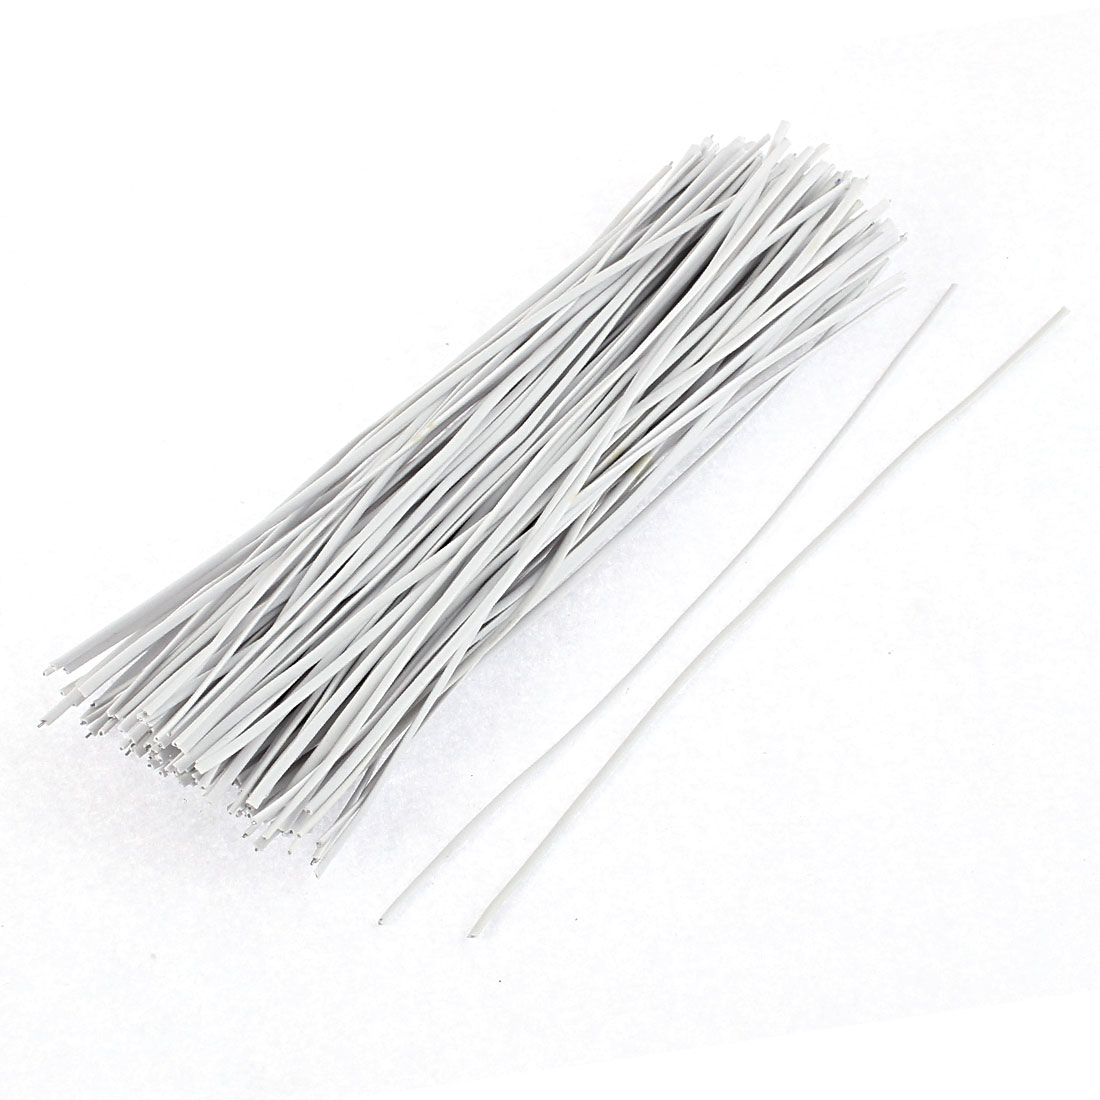 UXCELL 130Pcs 150Mm X 2Mm White Plastic Coated Metal Cord